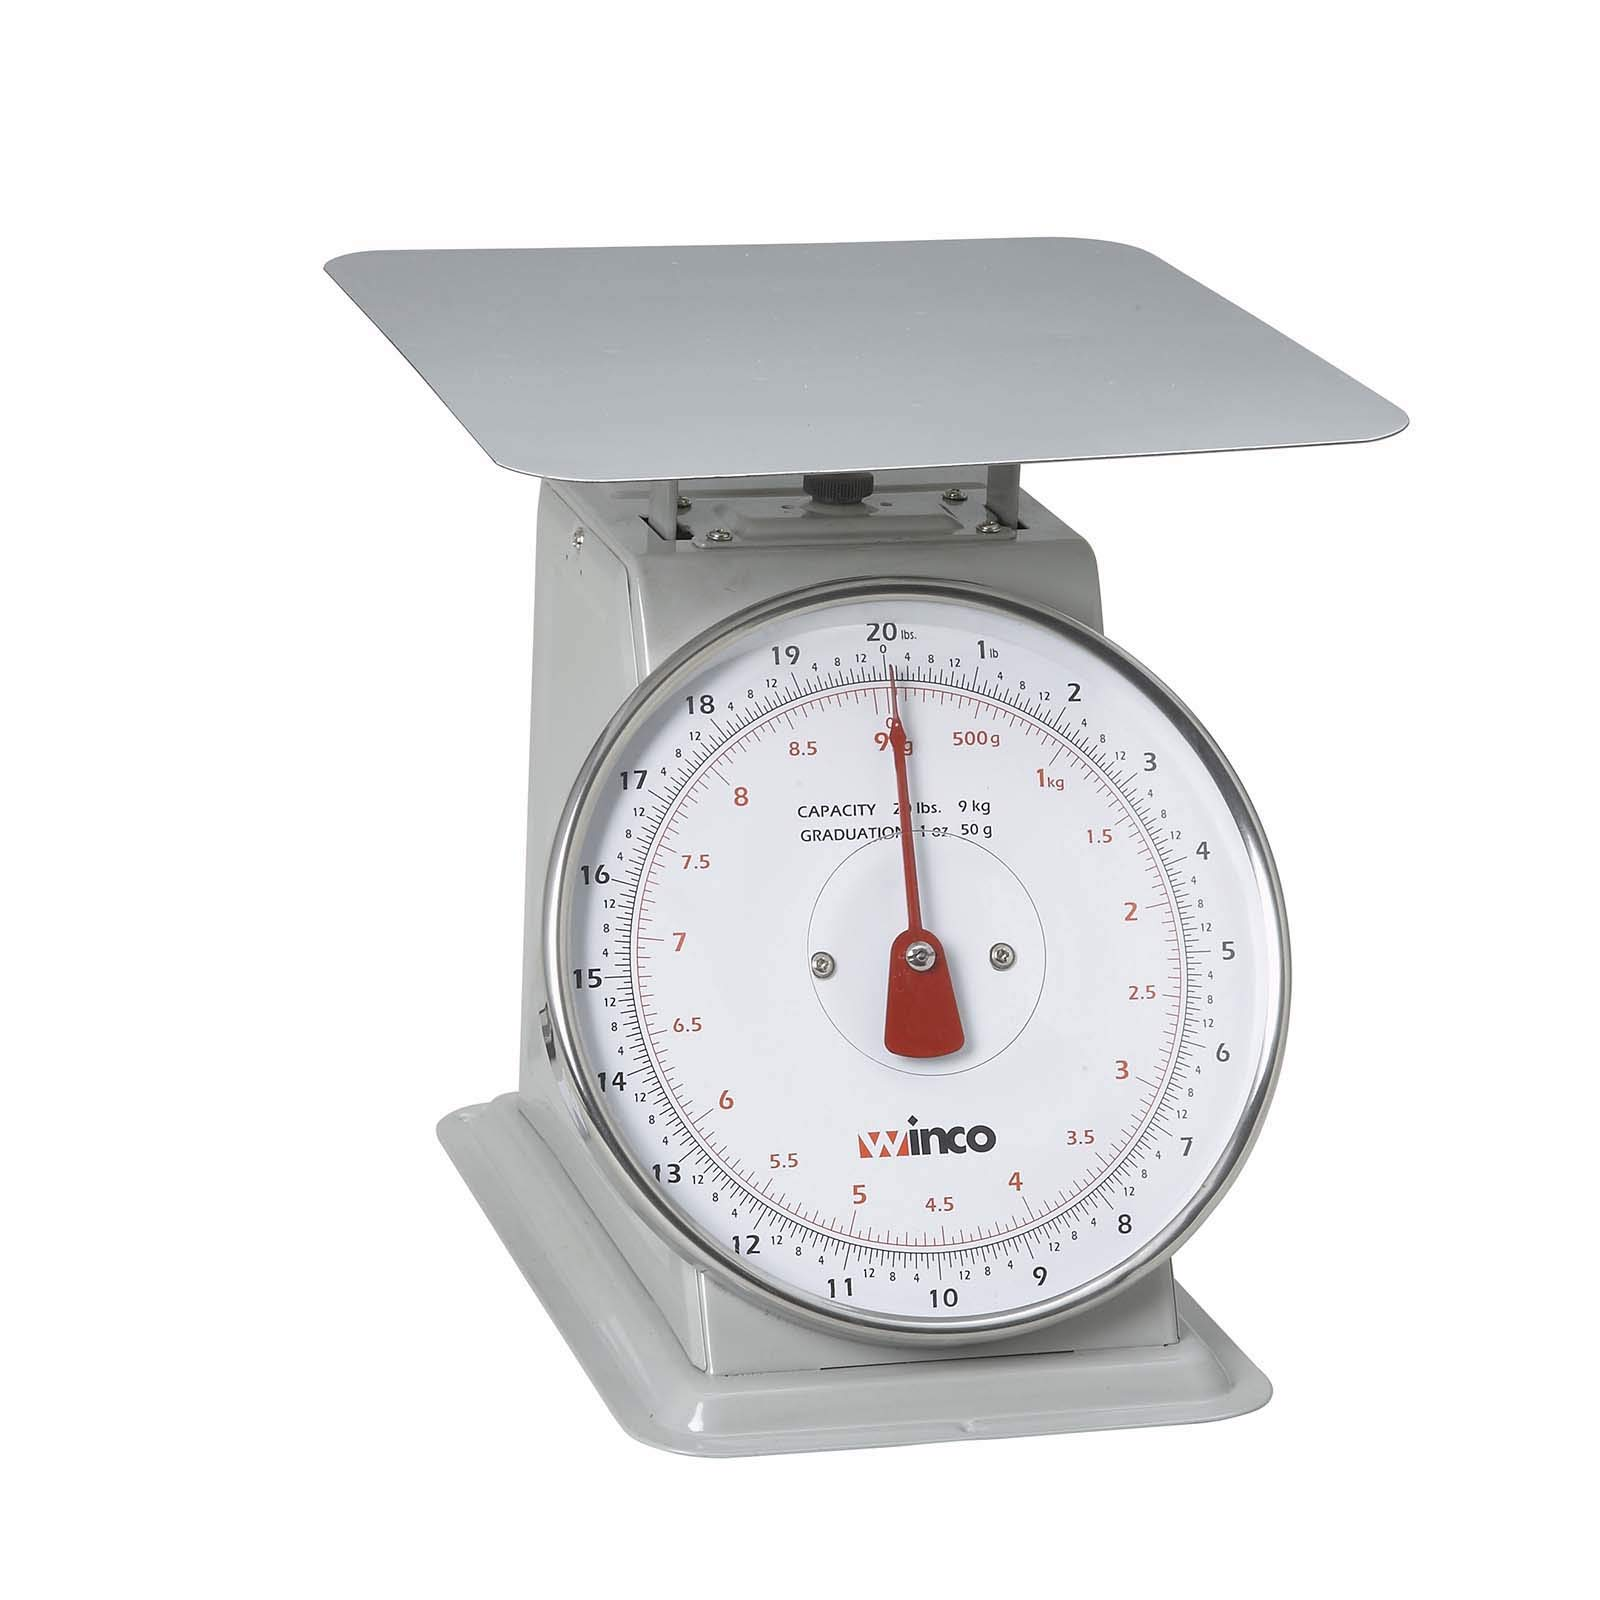 Winco SCAL-820 20-Pound/9.09kg Scale with 8-Inch Dial (Renewed) by Winco